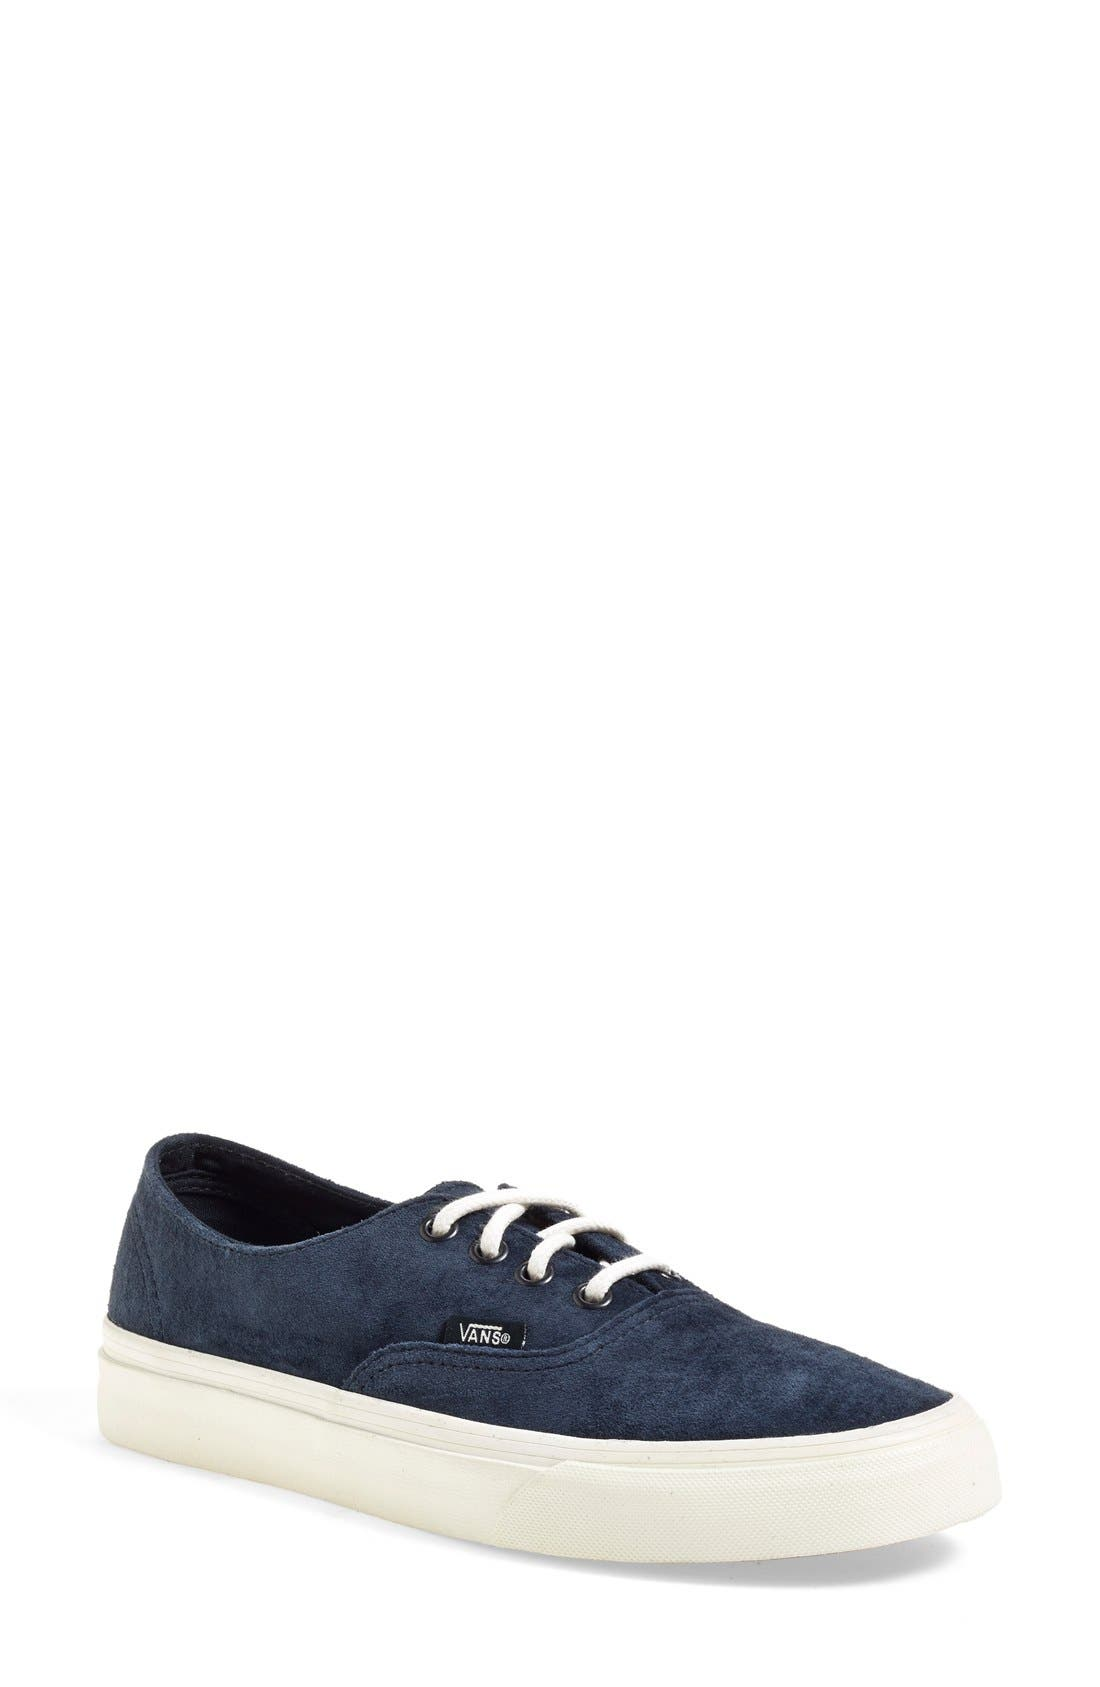 Main Image - Vans 'Authentic - Era Decon CA' Sneaker (Women)